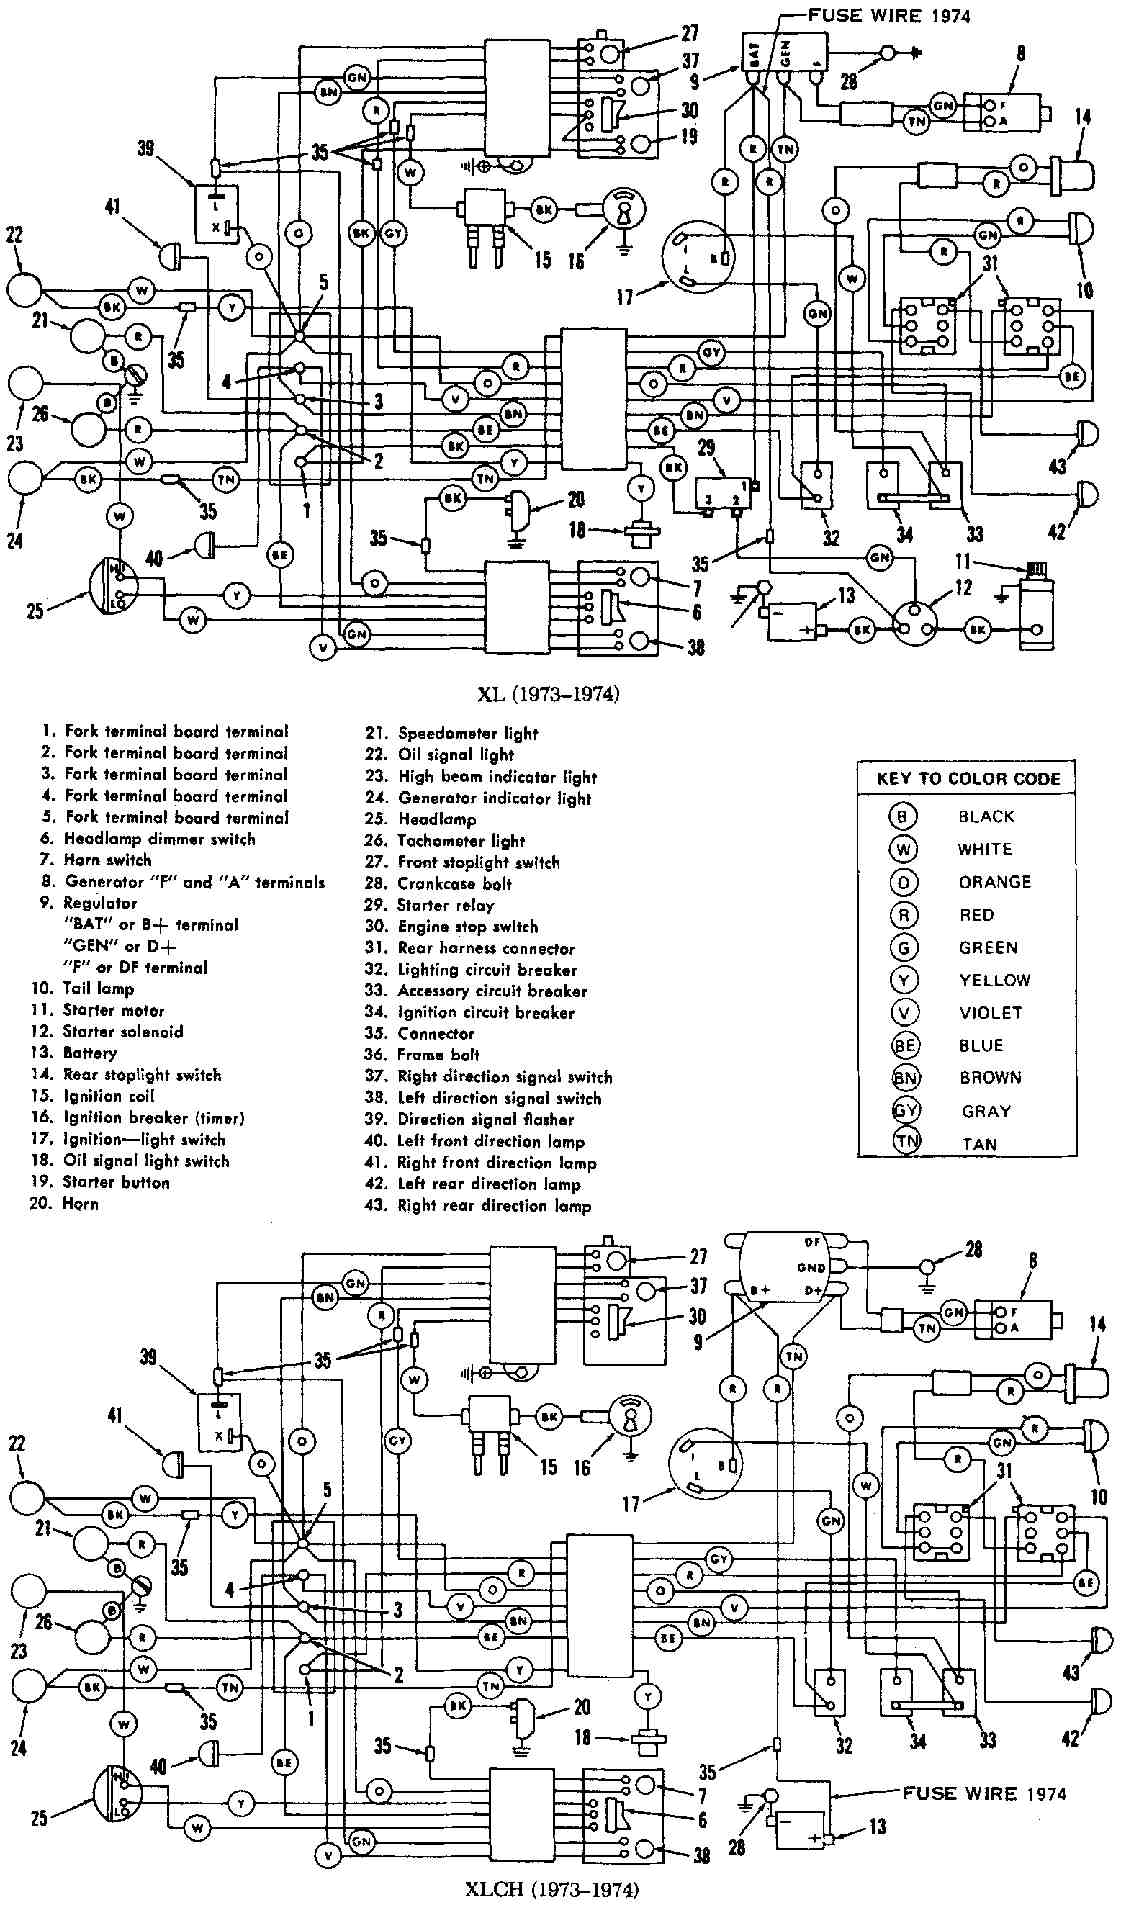 on a 1992 harley softail wiring